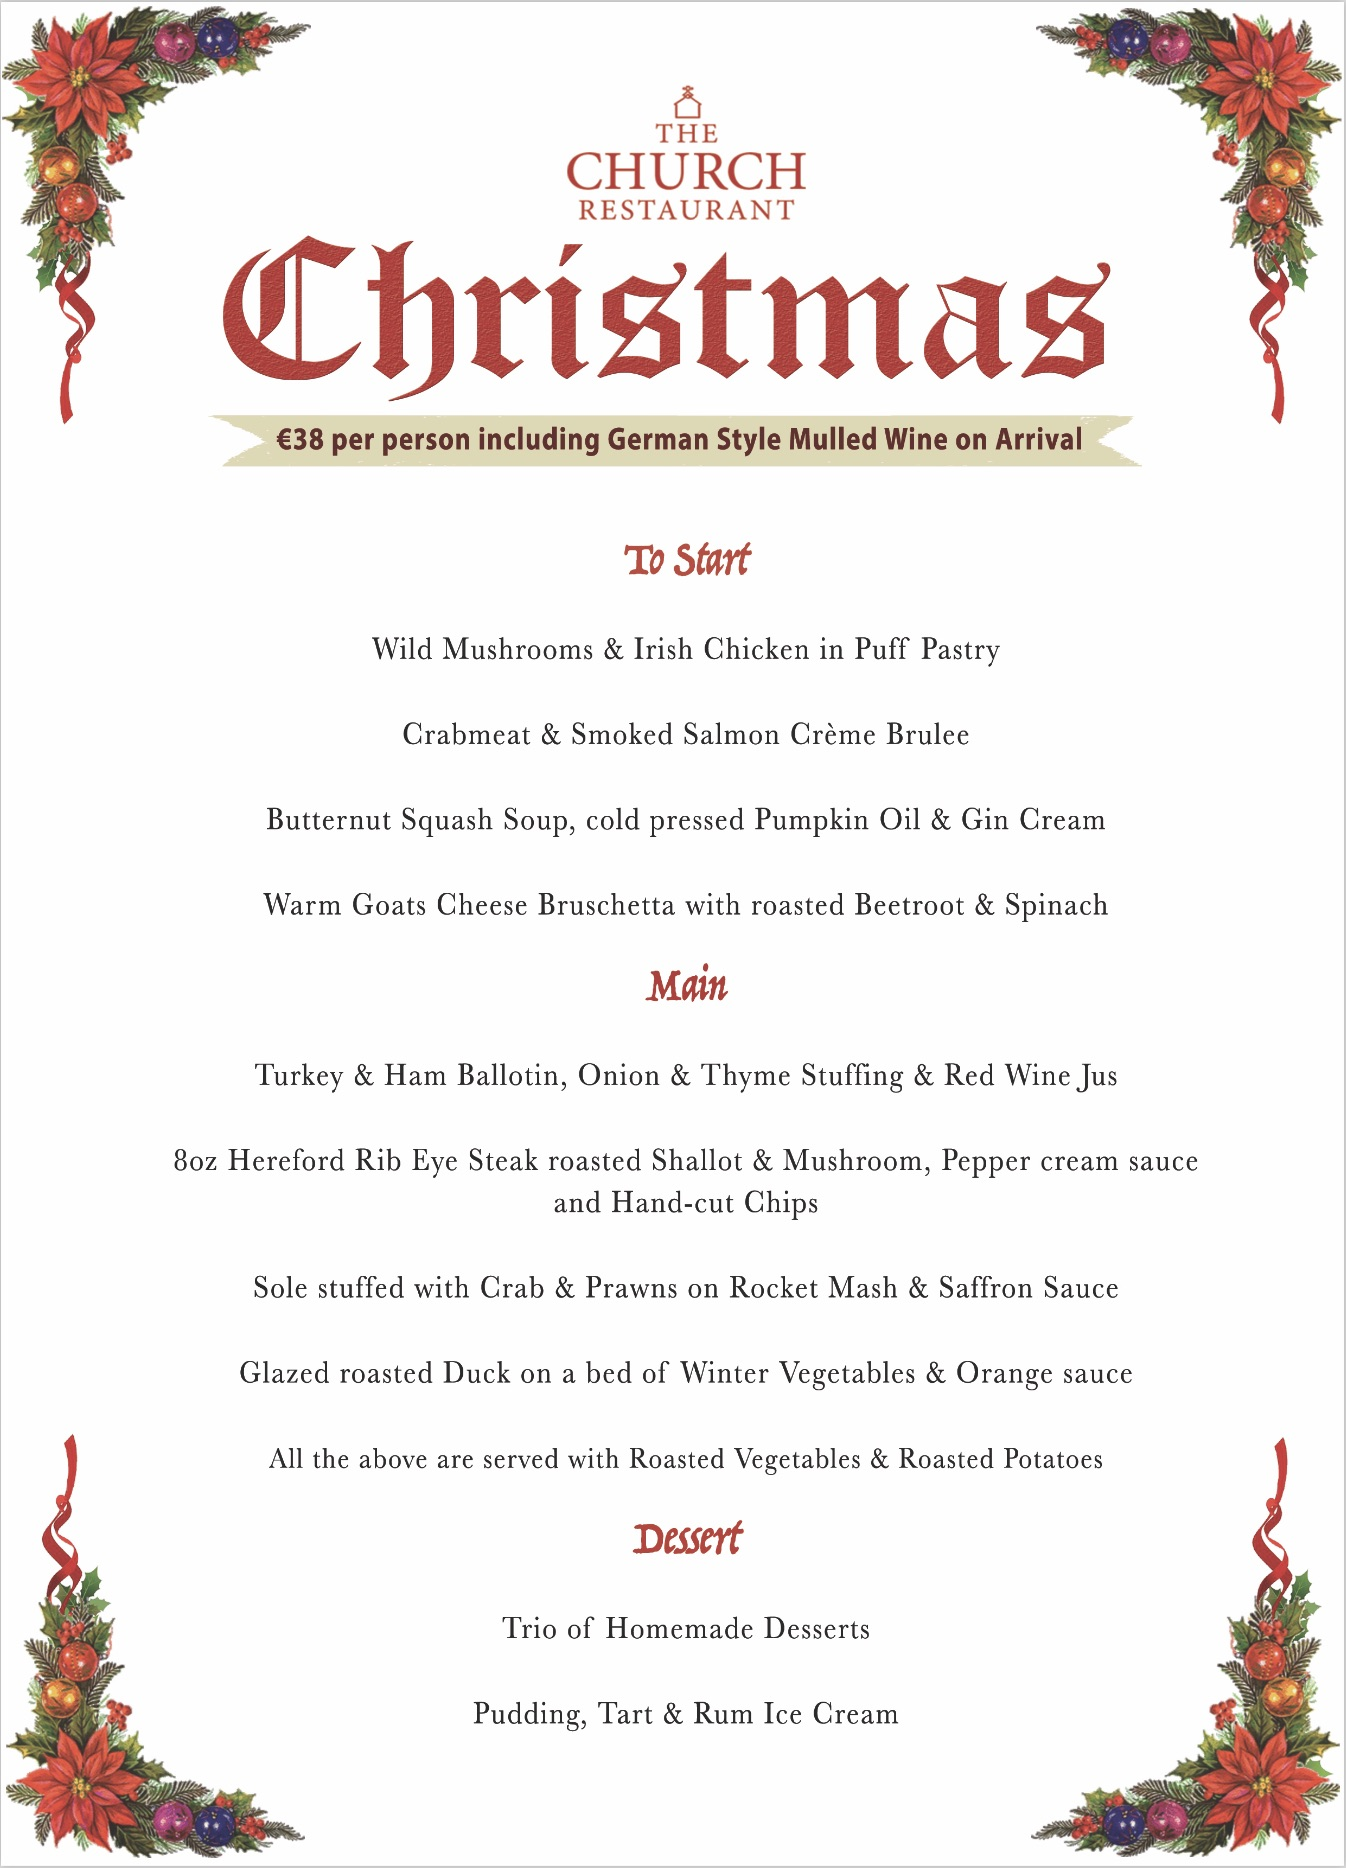 Christmas Menu.The Church Restaurant Christmas Menu 2017 The Church